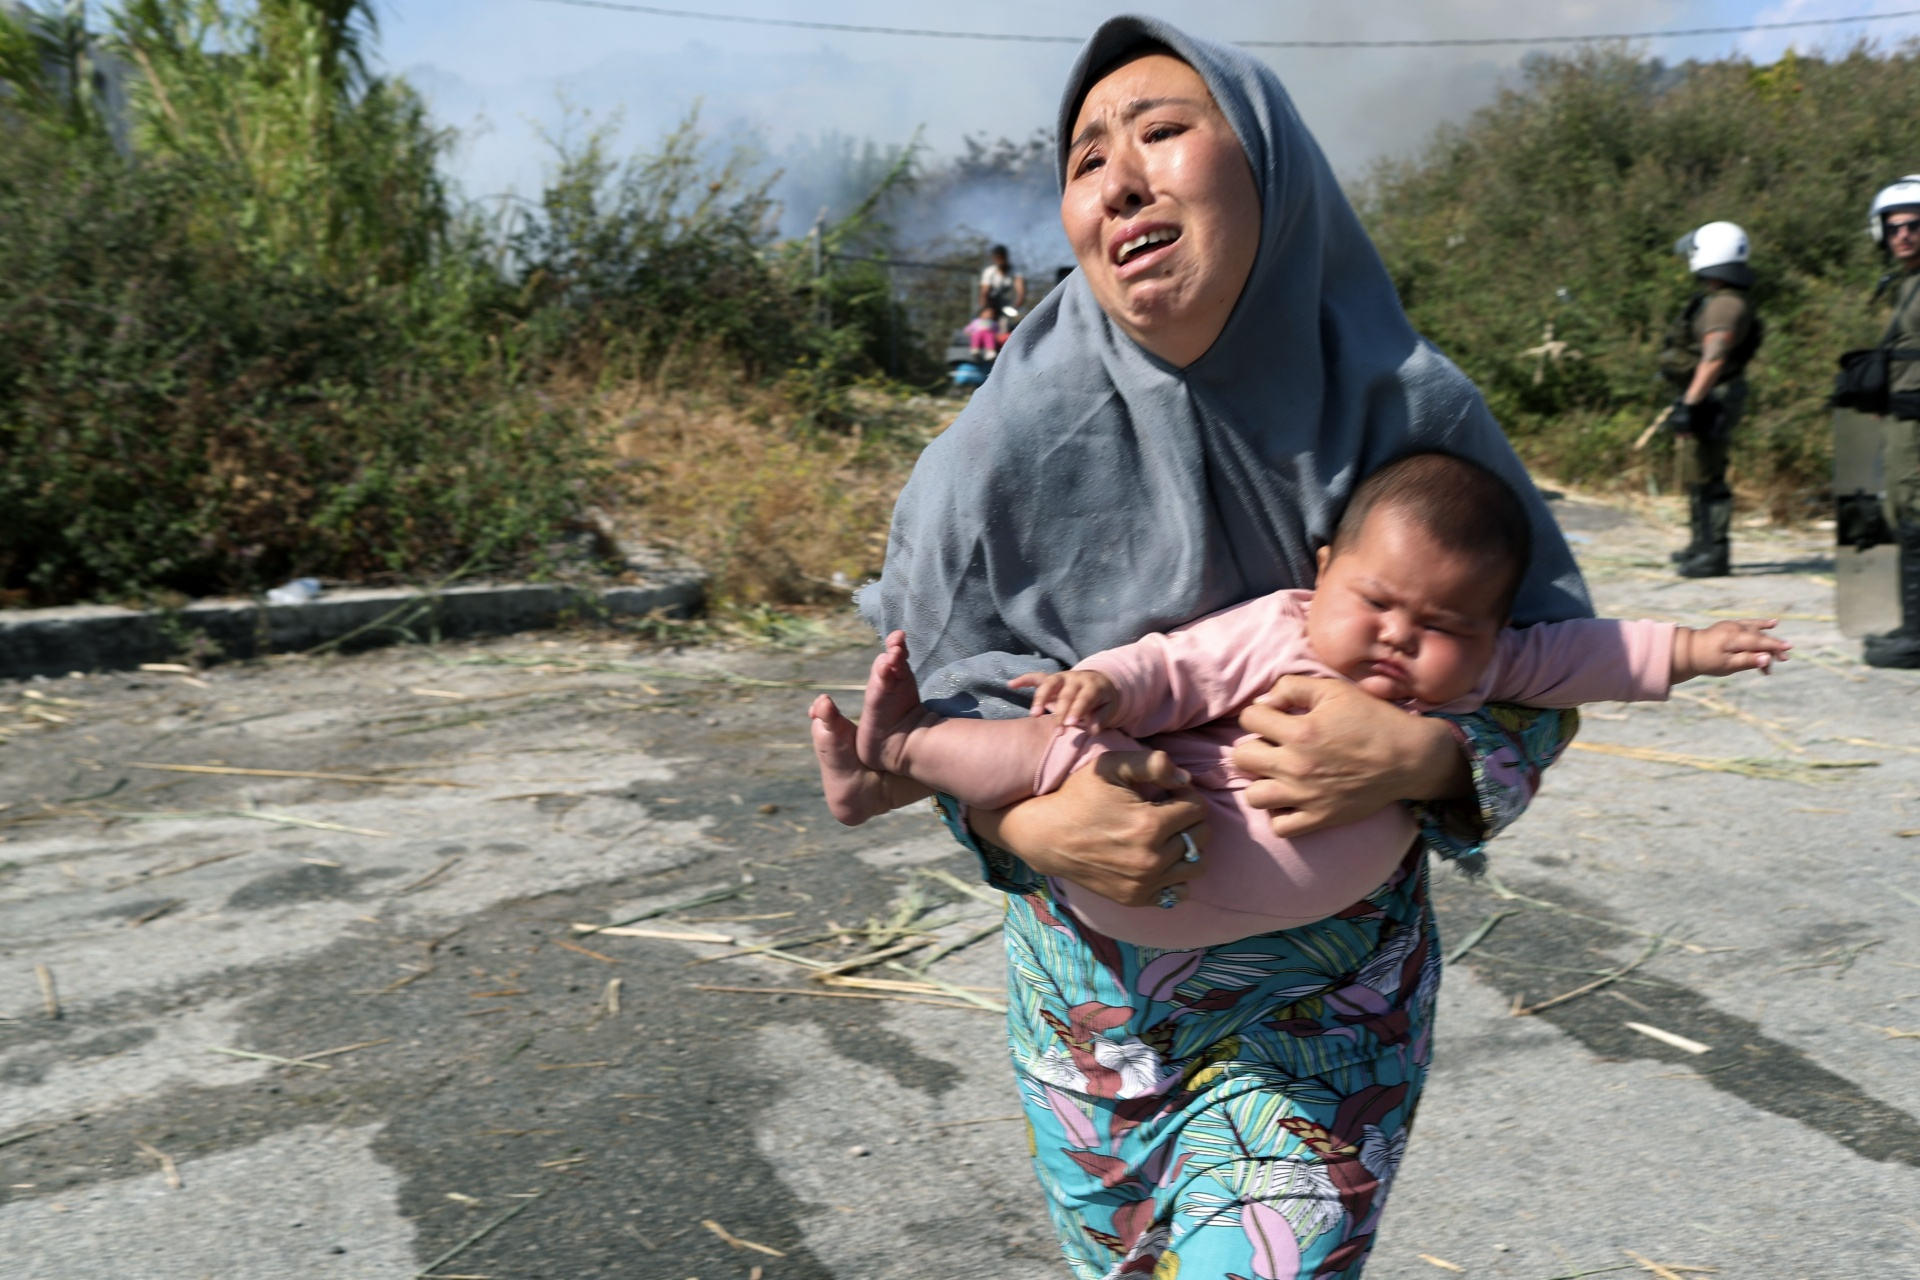 A refugee holds her baby as she runs to avoid a small fire in a field near Mytilene town, on the northeastern island of Lesbos, Greece